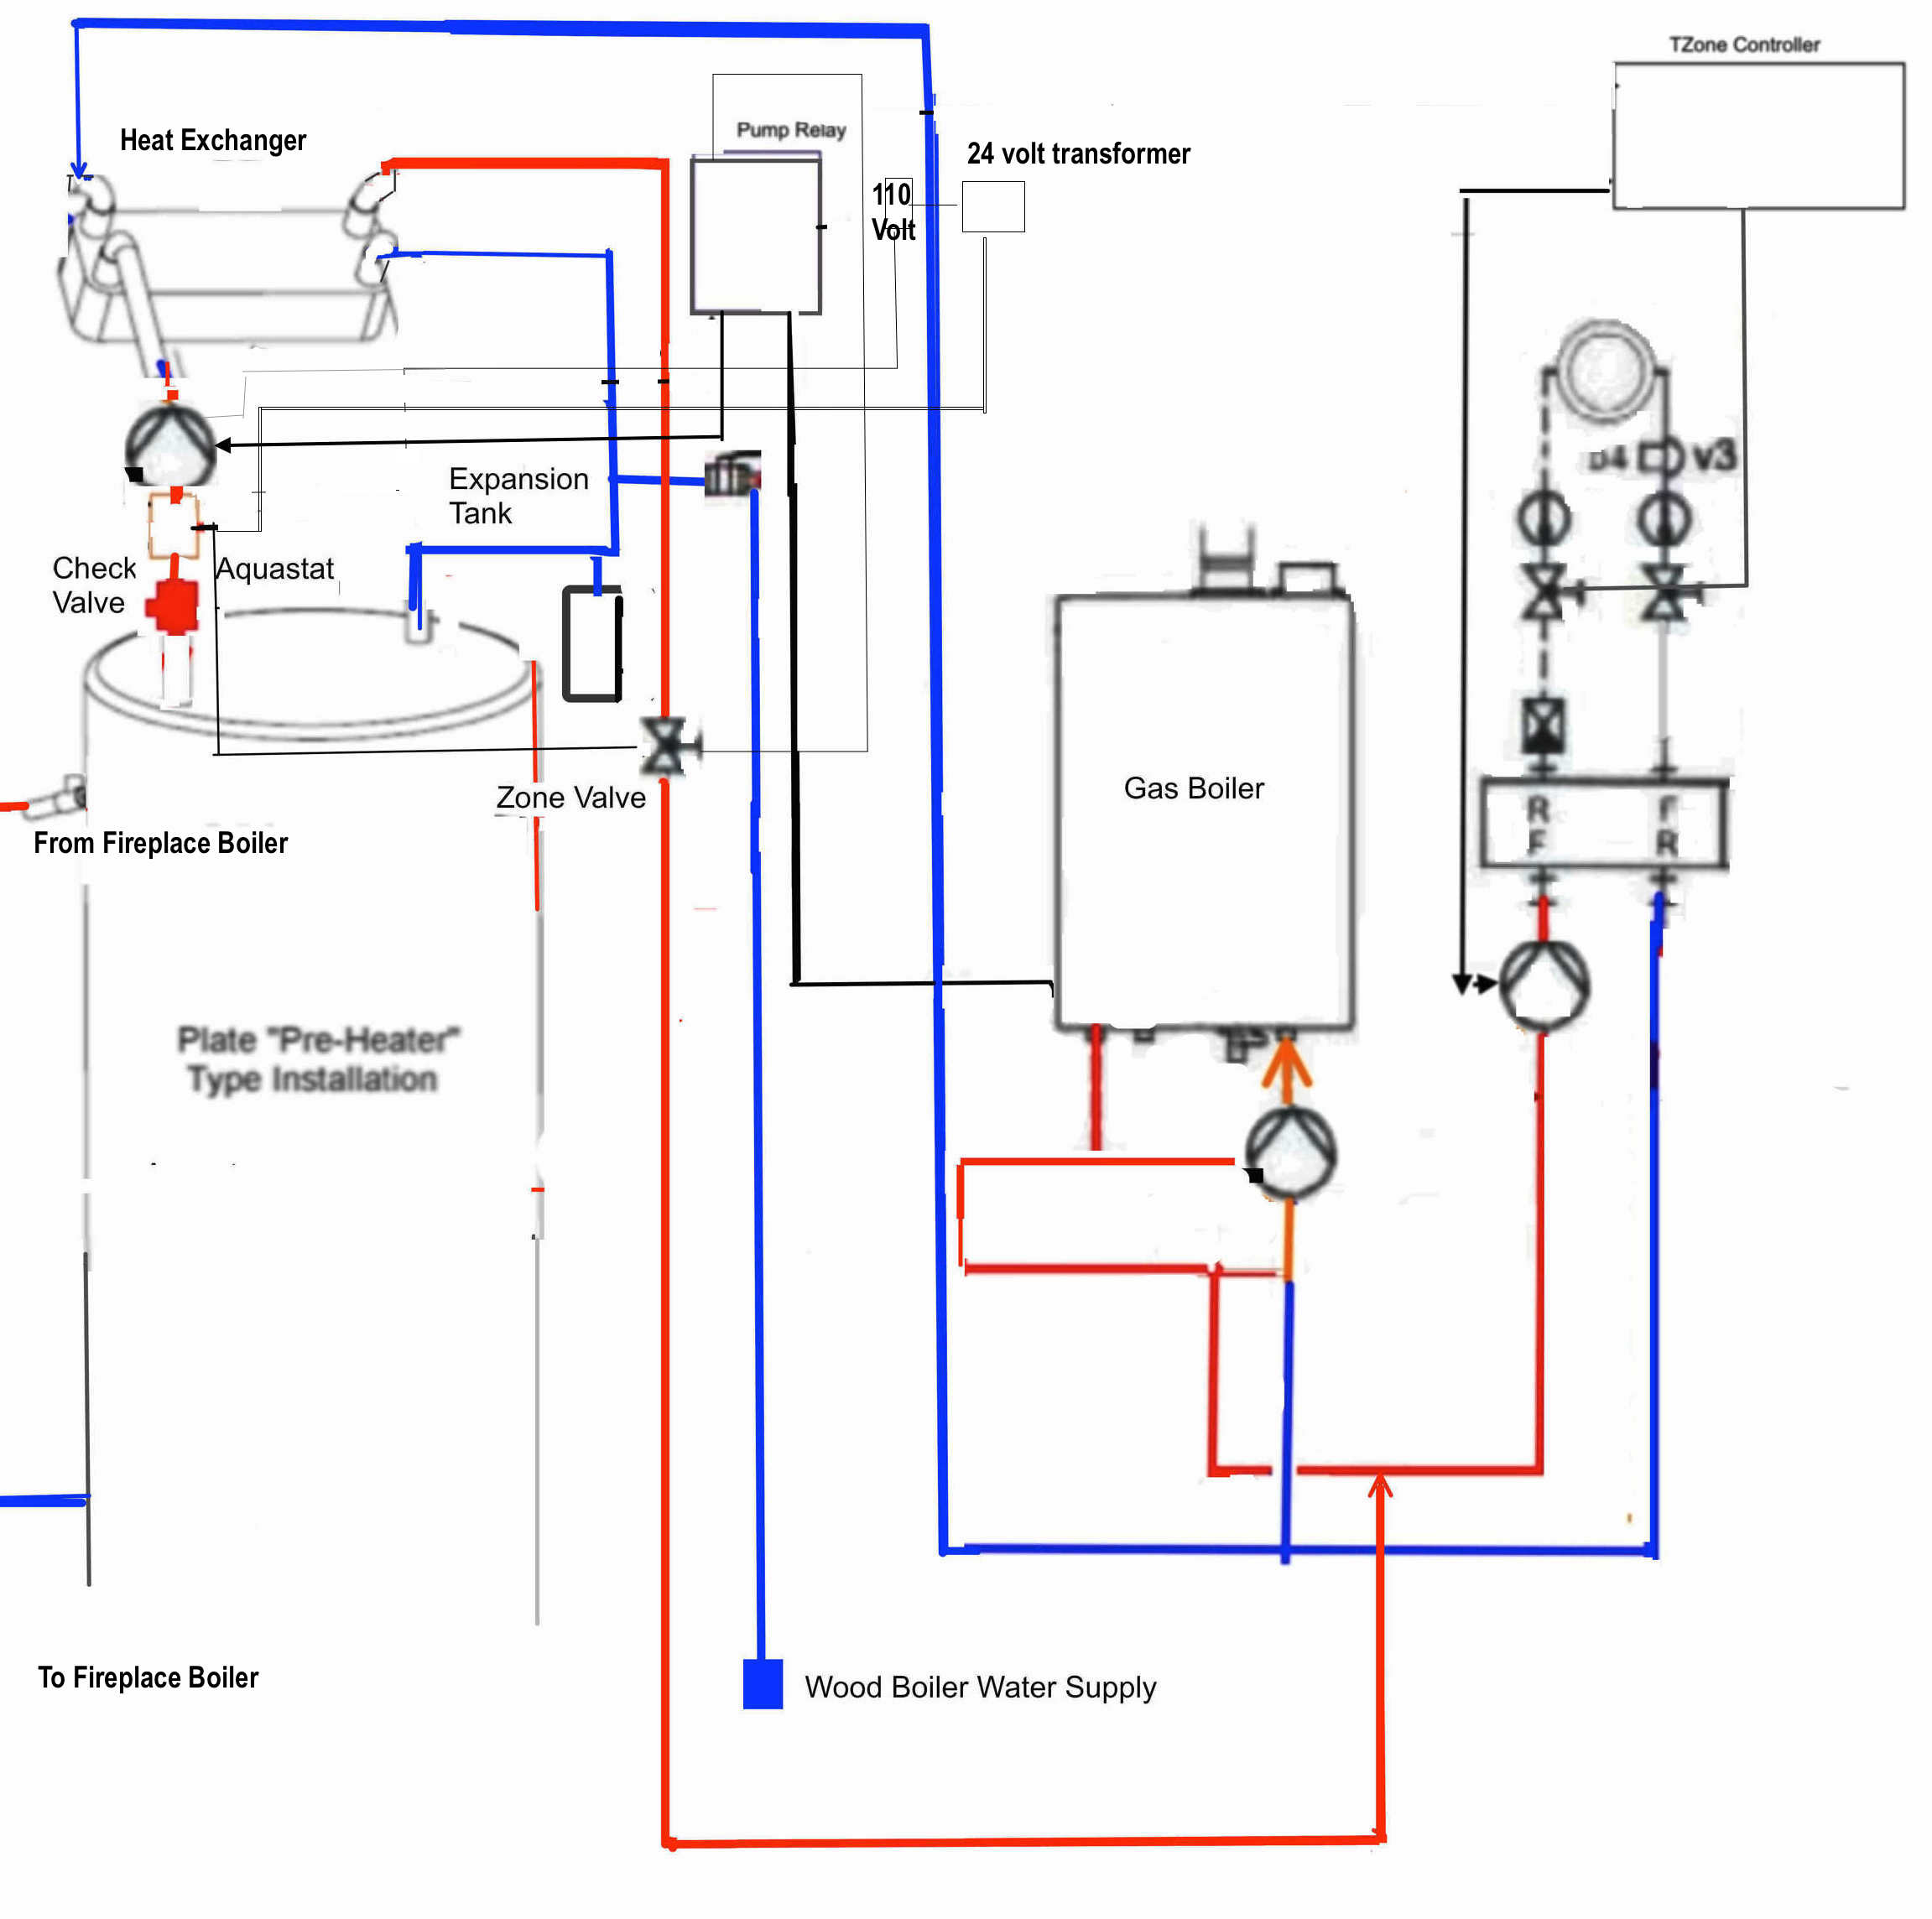 How To Build A Thermocouple  lifier besides Ducane Furnace Wiring Diagram additionally Oil Quick Stop Valves besides 81h1k Hi Andrew I Flexi  12 Hx Boiler Ariston Unvented together with Honeywell Dual Thermostat Wiring Diagram. on honeywell primary control wiring diagram